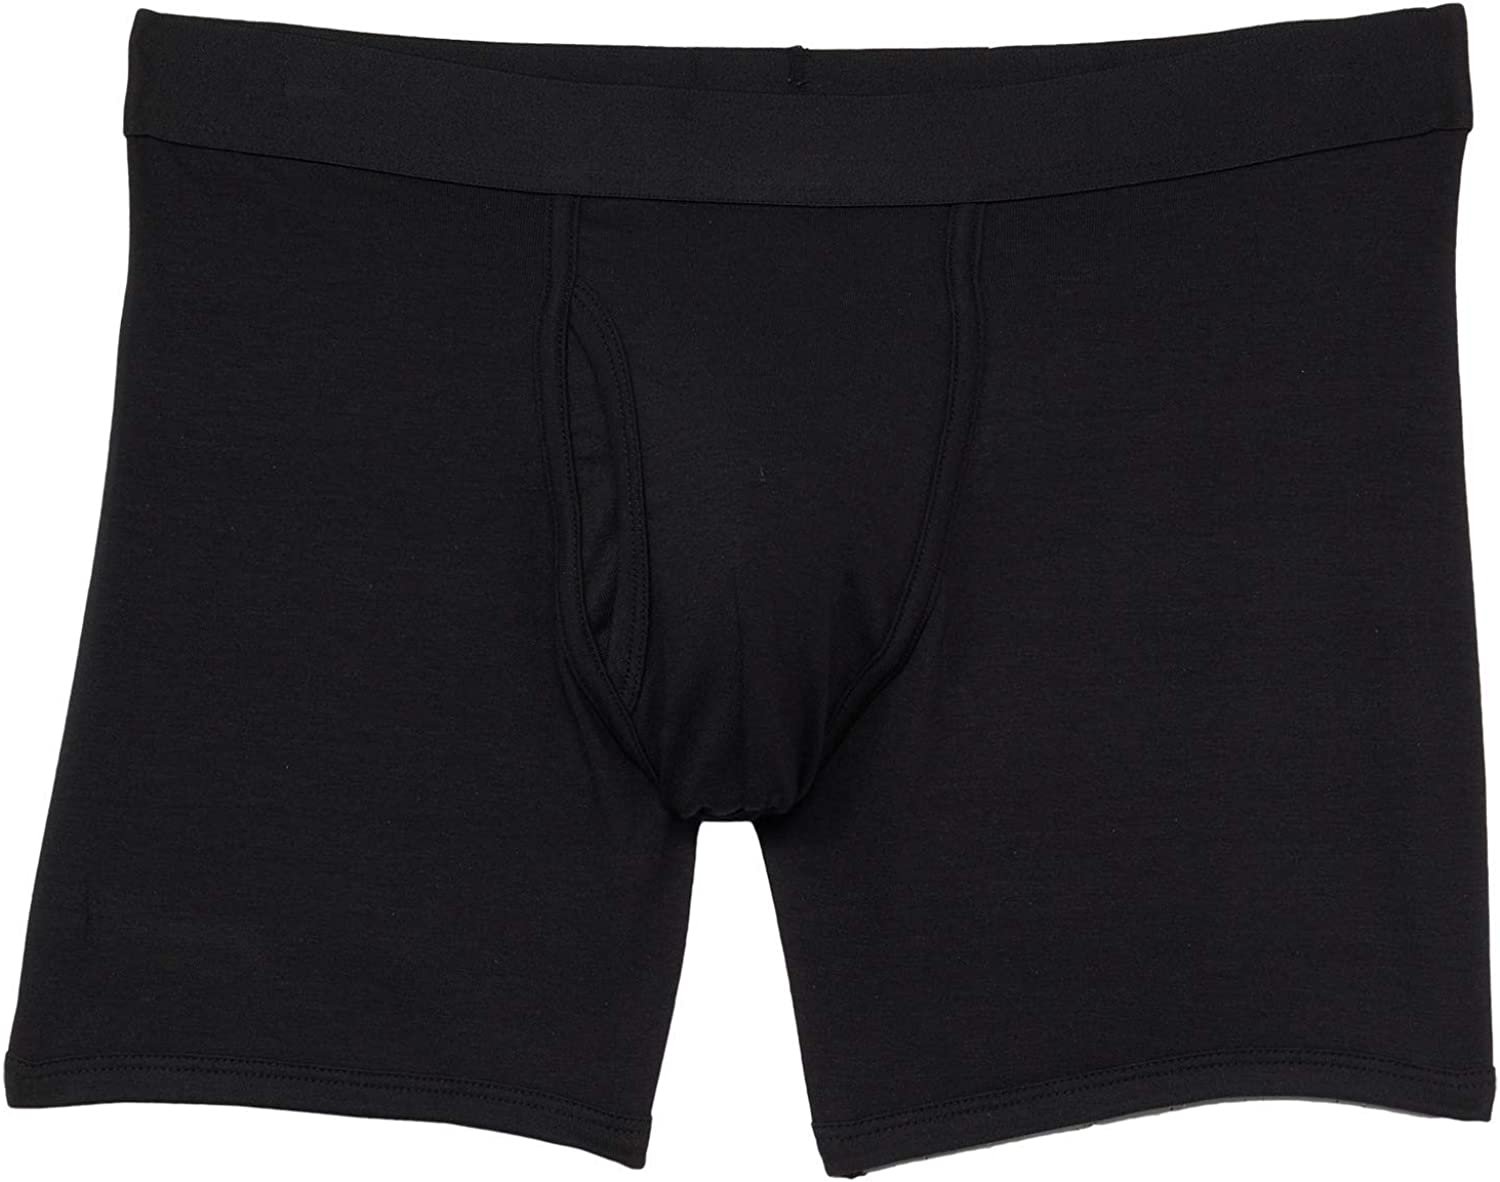 Pact Organic Cotton Boxer Brief 4-Pack